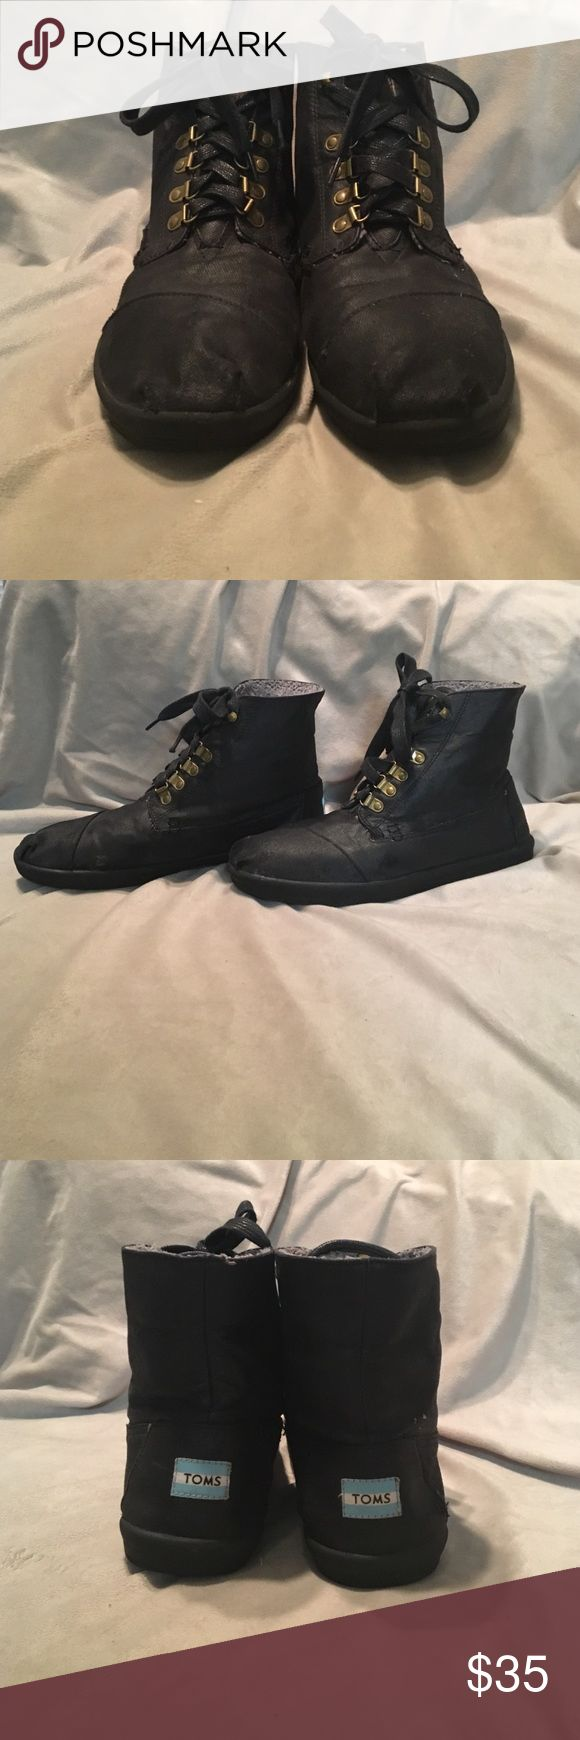 TOMS Boots Black TOMS boots. In great condition! There is some very slight wear on the material on the sides but not very noticeable. Otherwise in great shape! TOMS Shoes Boots